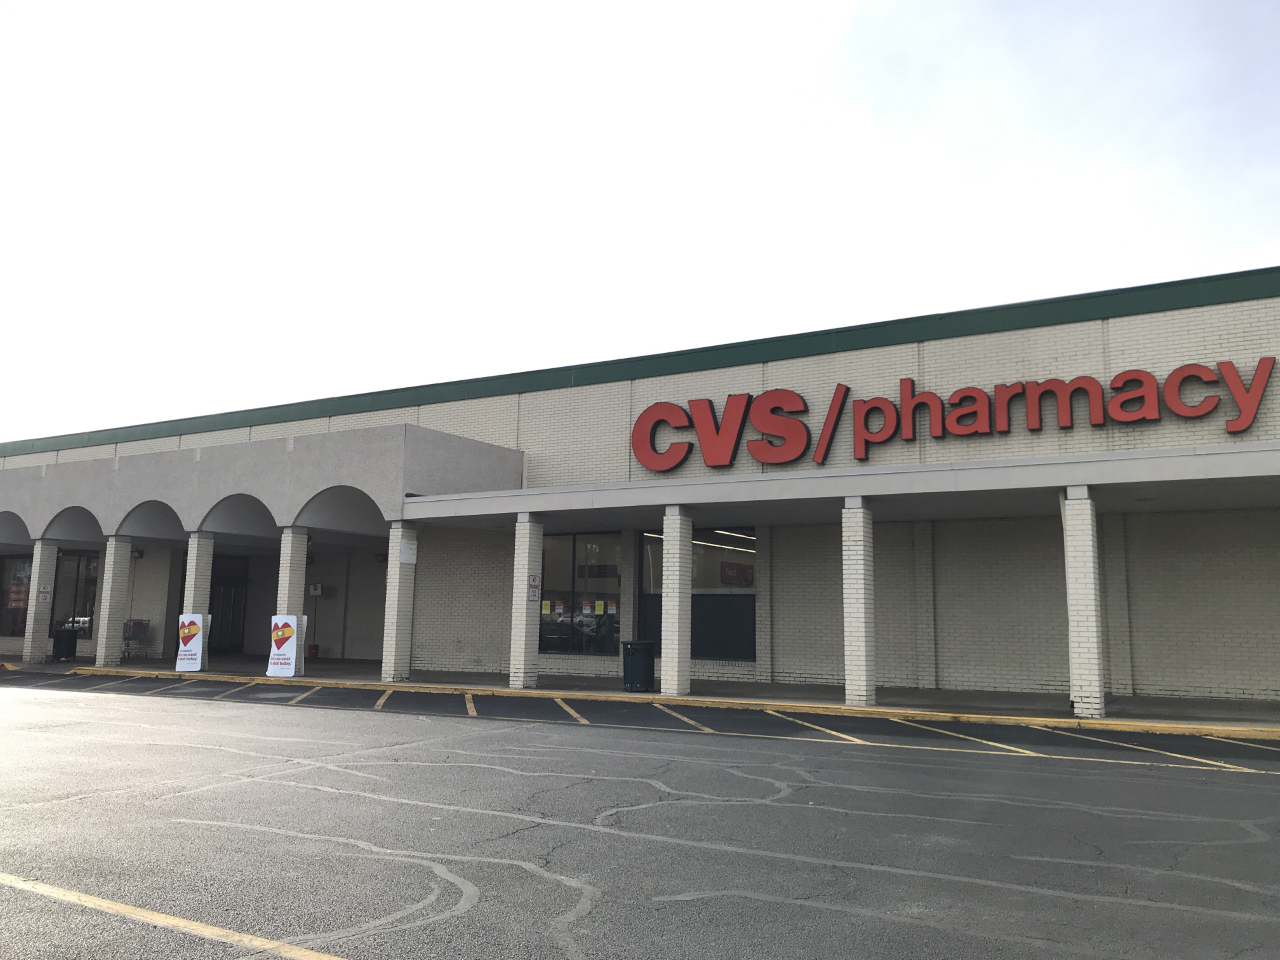 Cvs Pharmacy Located On Sterling Ave. To Close Dec. 1 throughout Cvs Photo Calendar